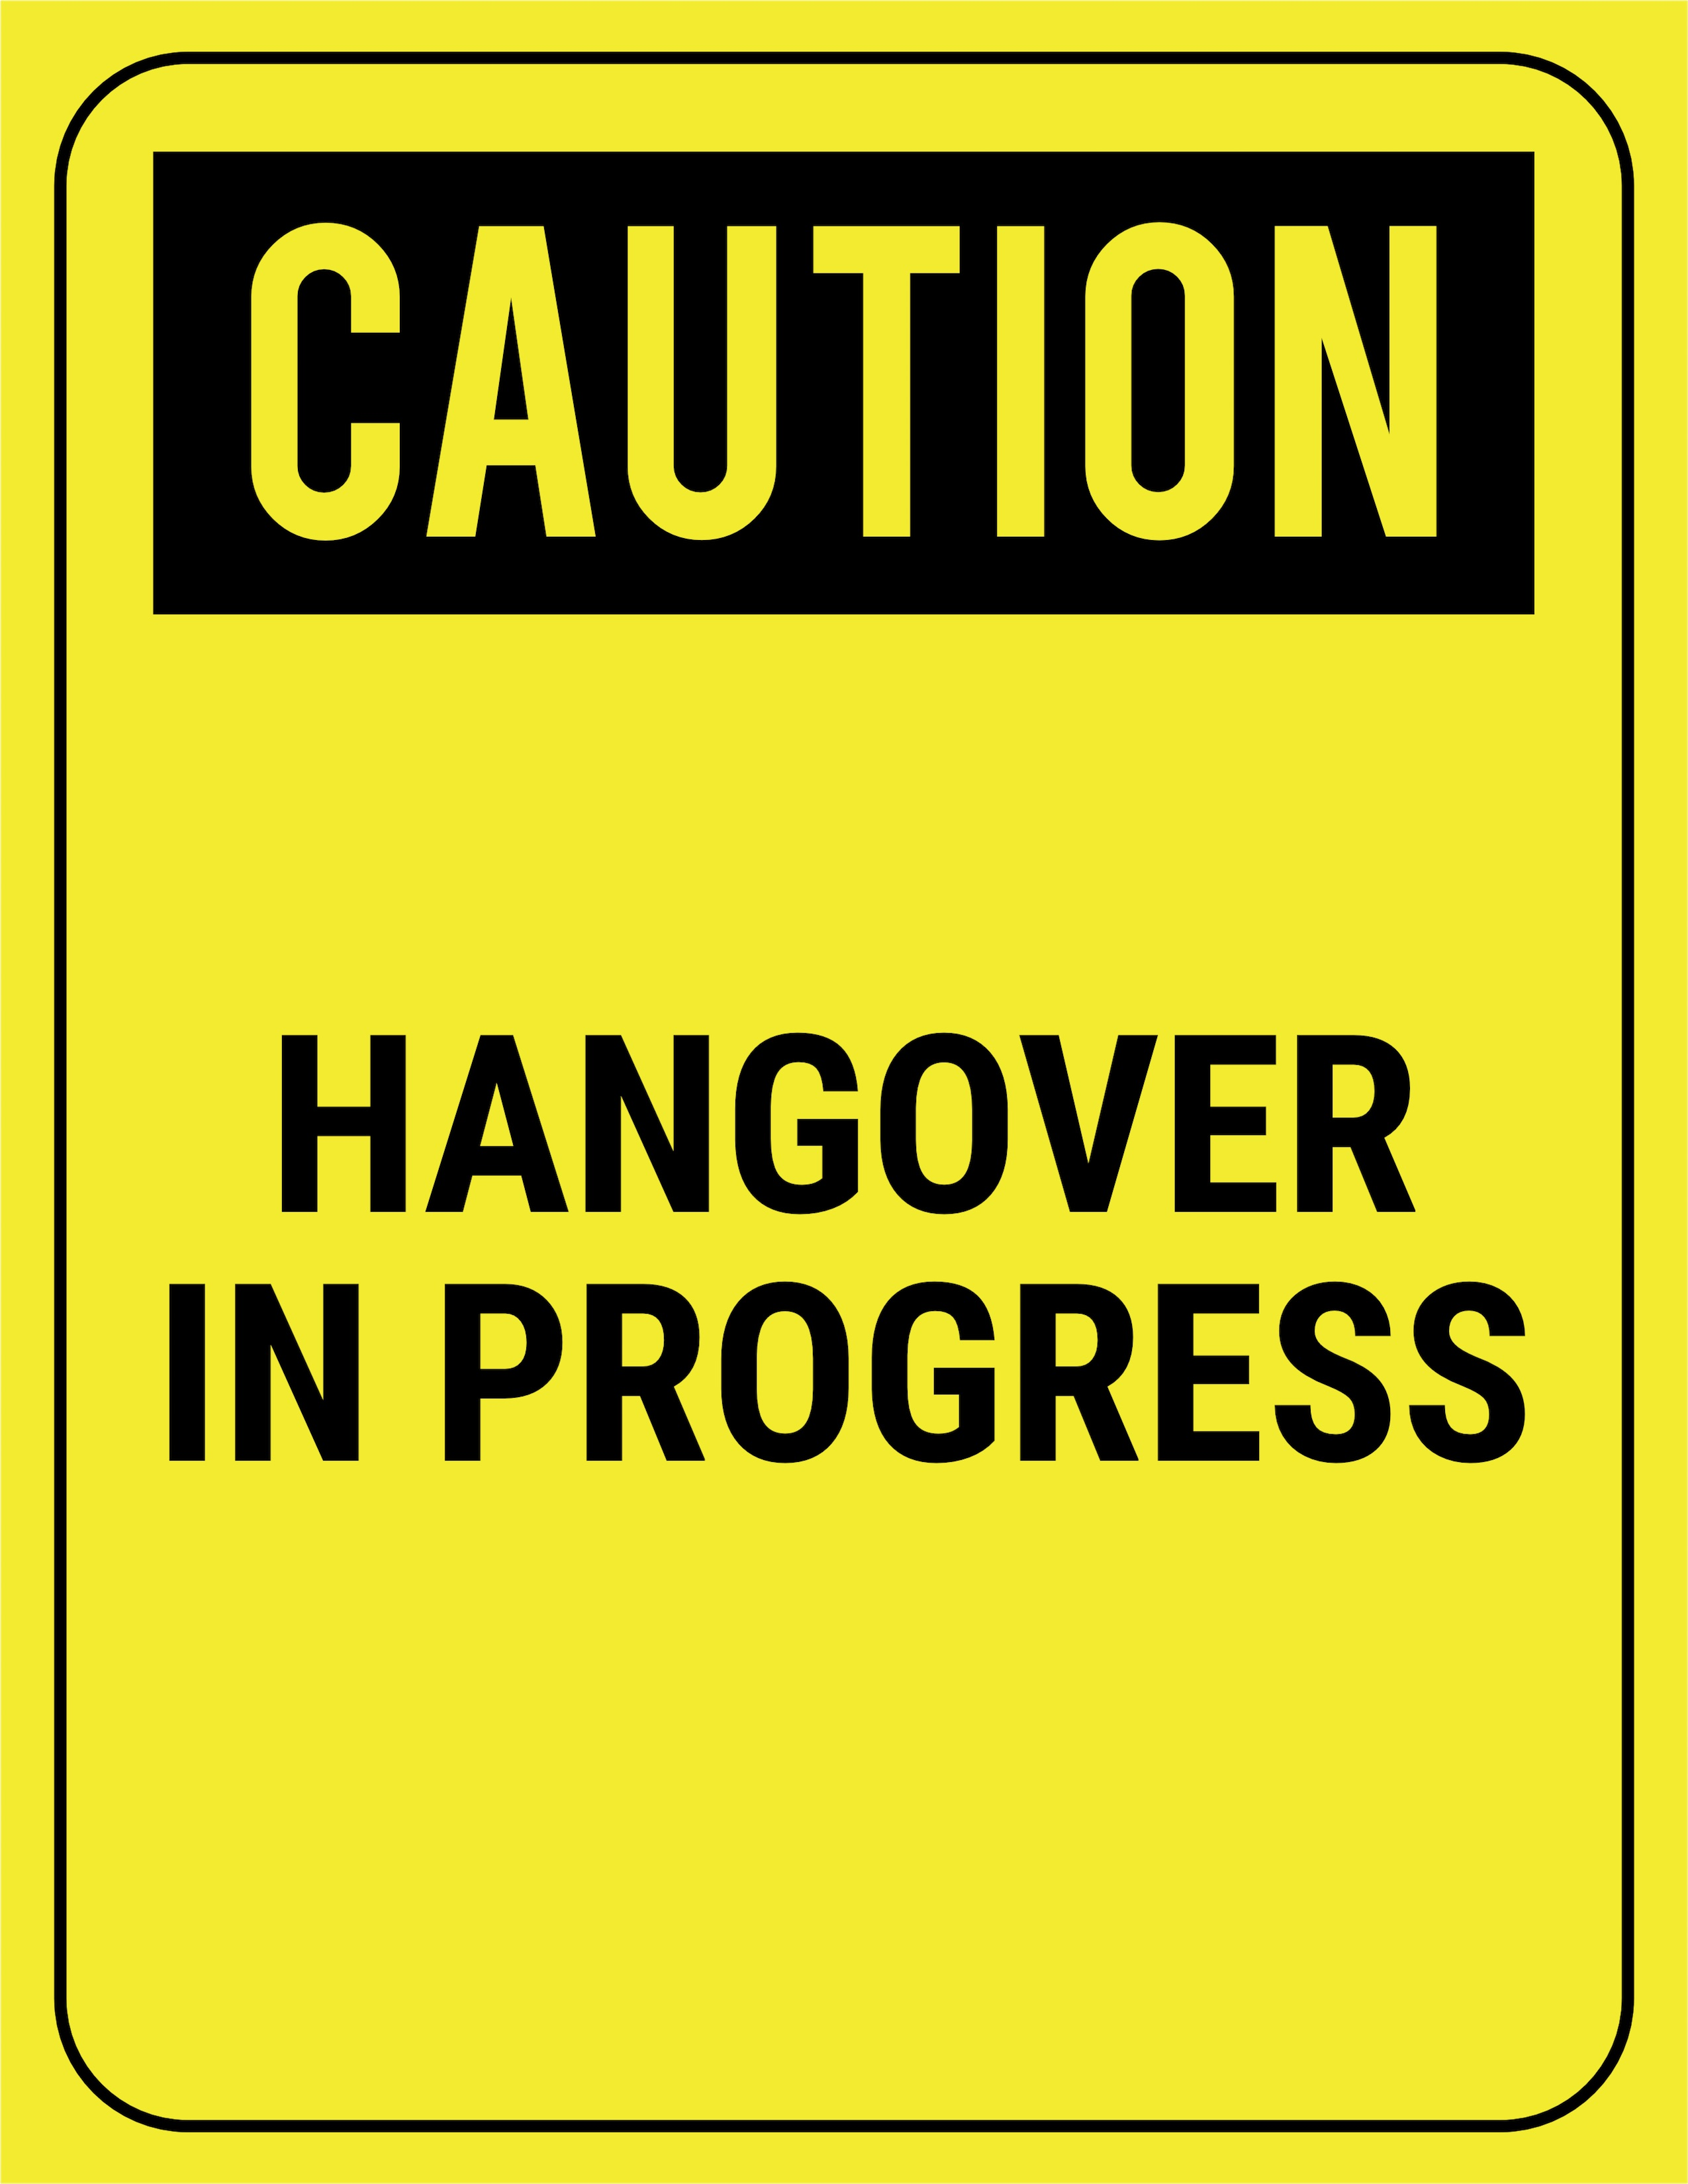 funny birthday signs ; funny-safety-sign-caution-hangover-in-progress-2550x3300